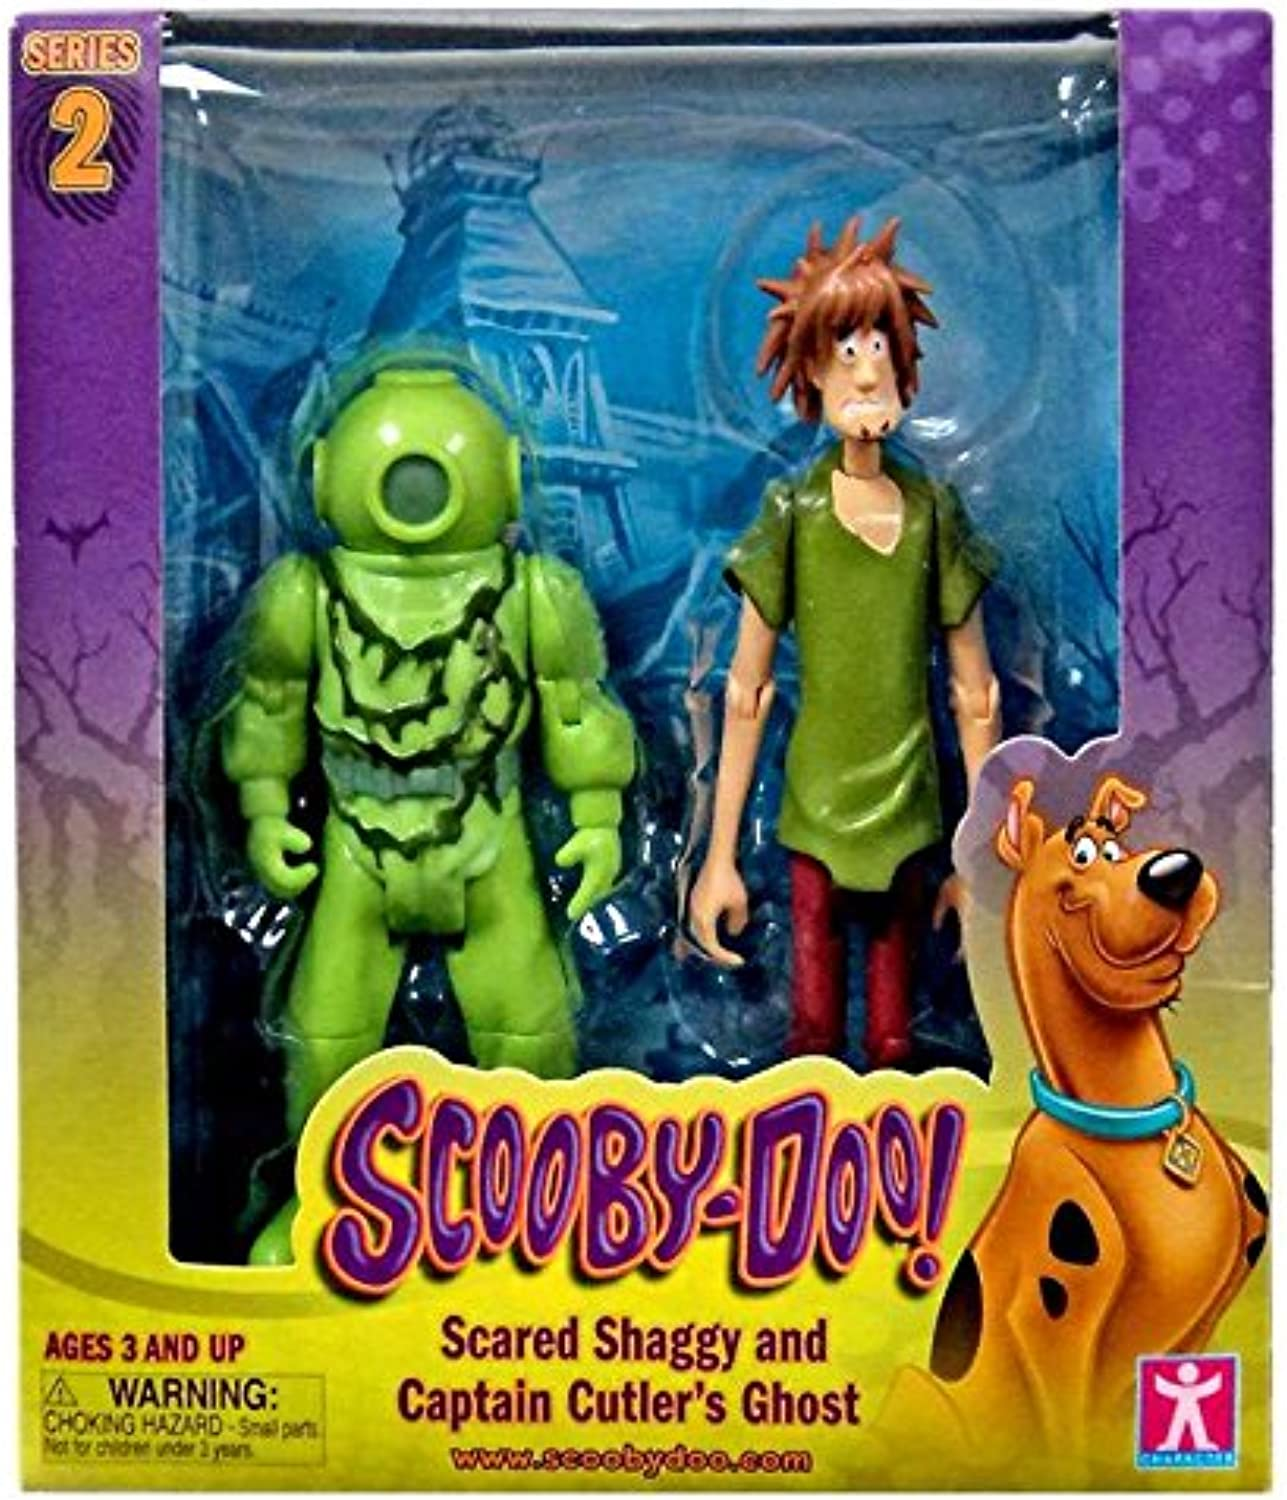 Scooby Doo, Series 2 Scared Shaggy and Captain Cutler's Ghost Action Figures